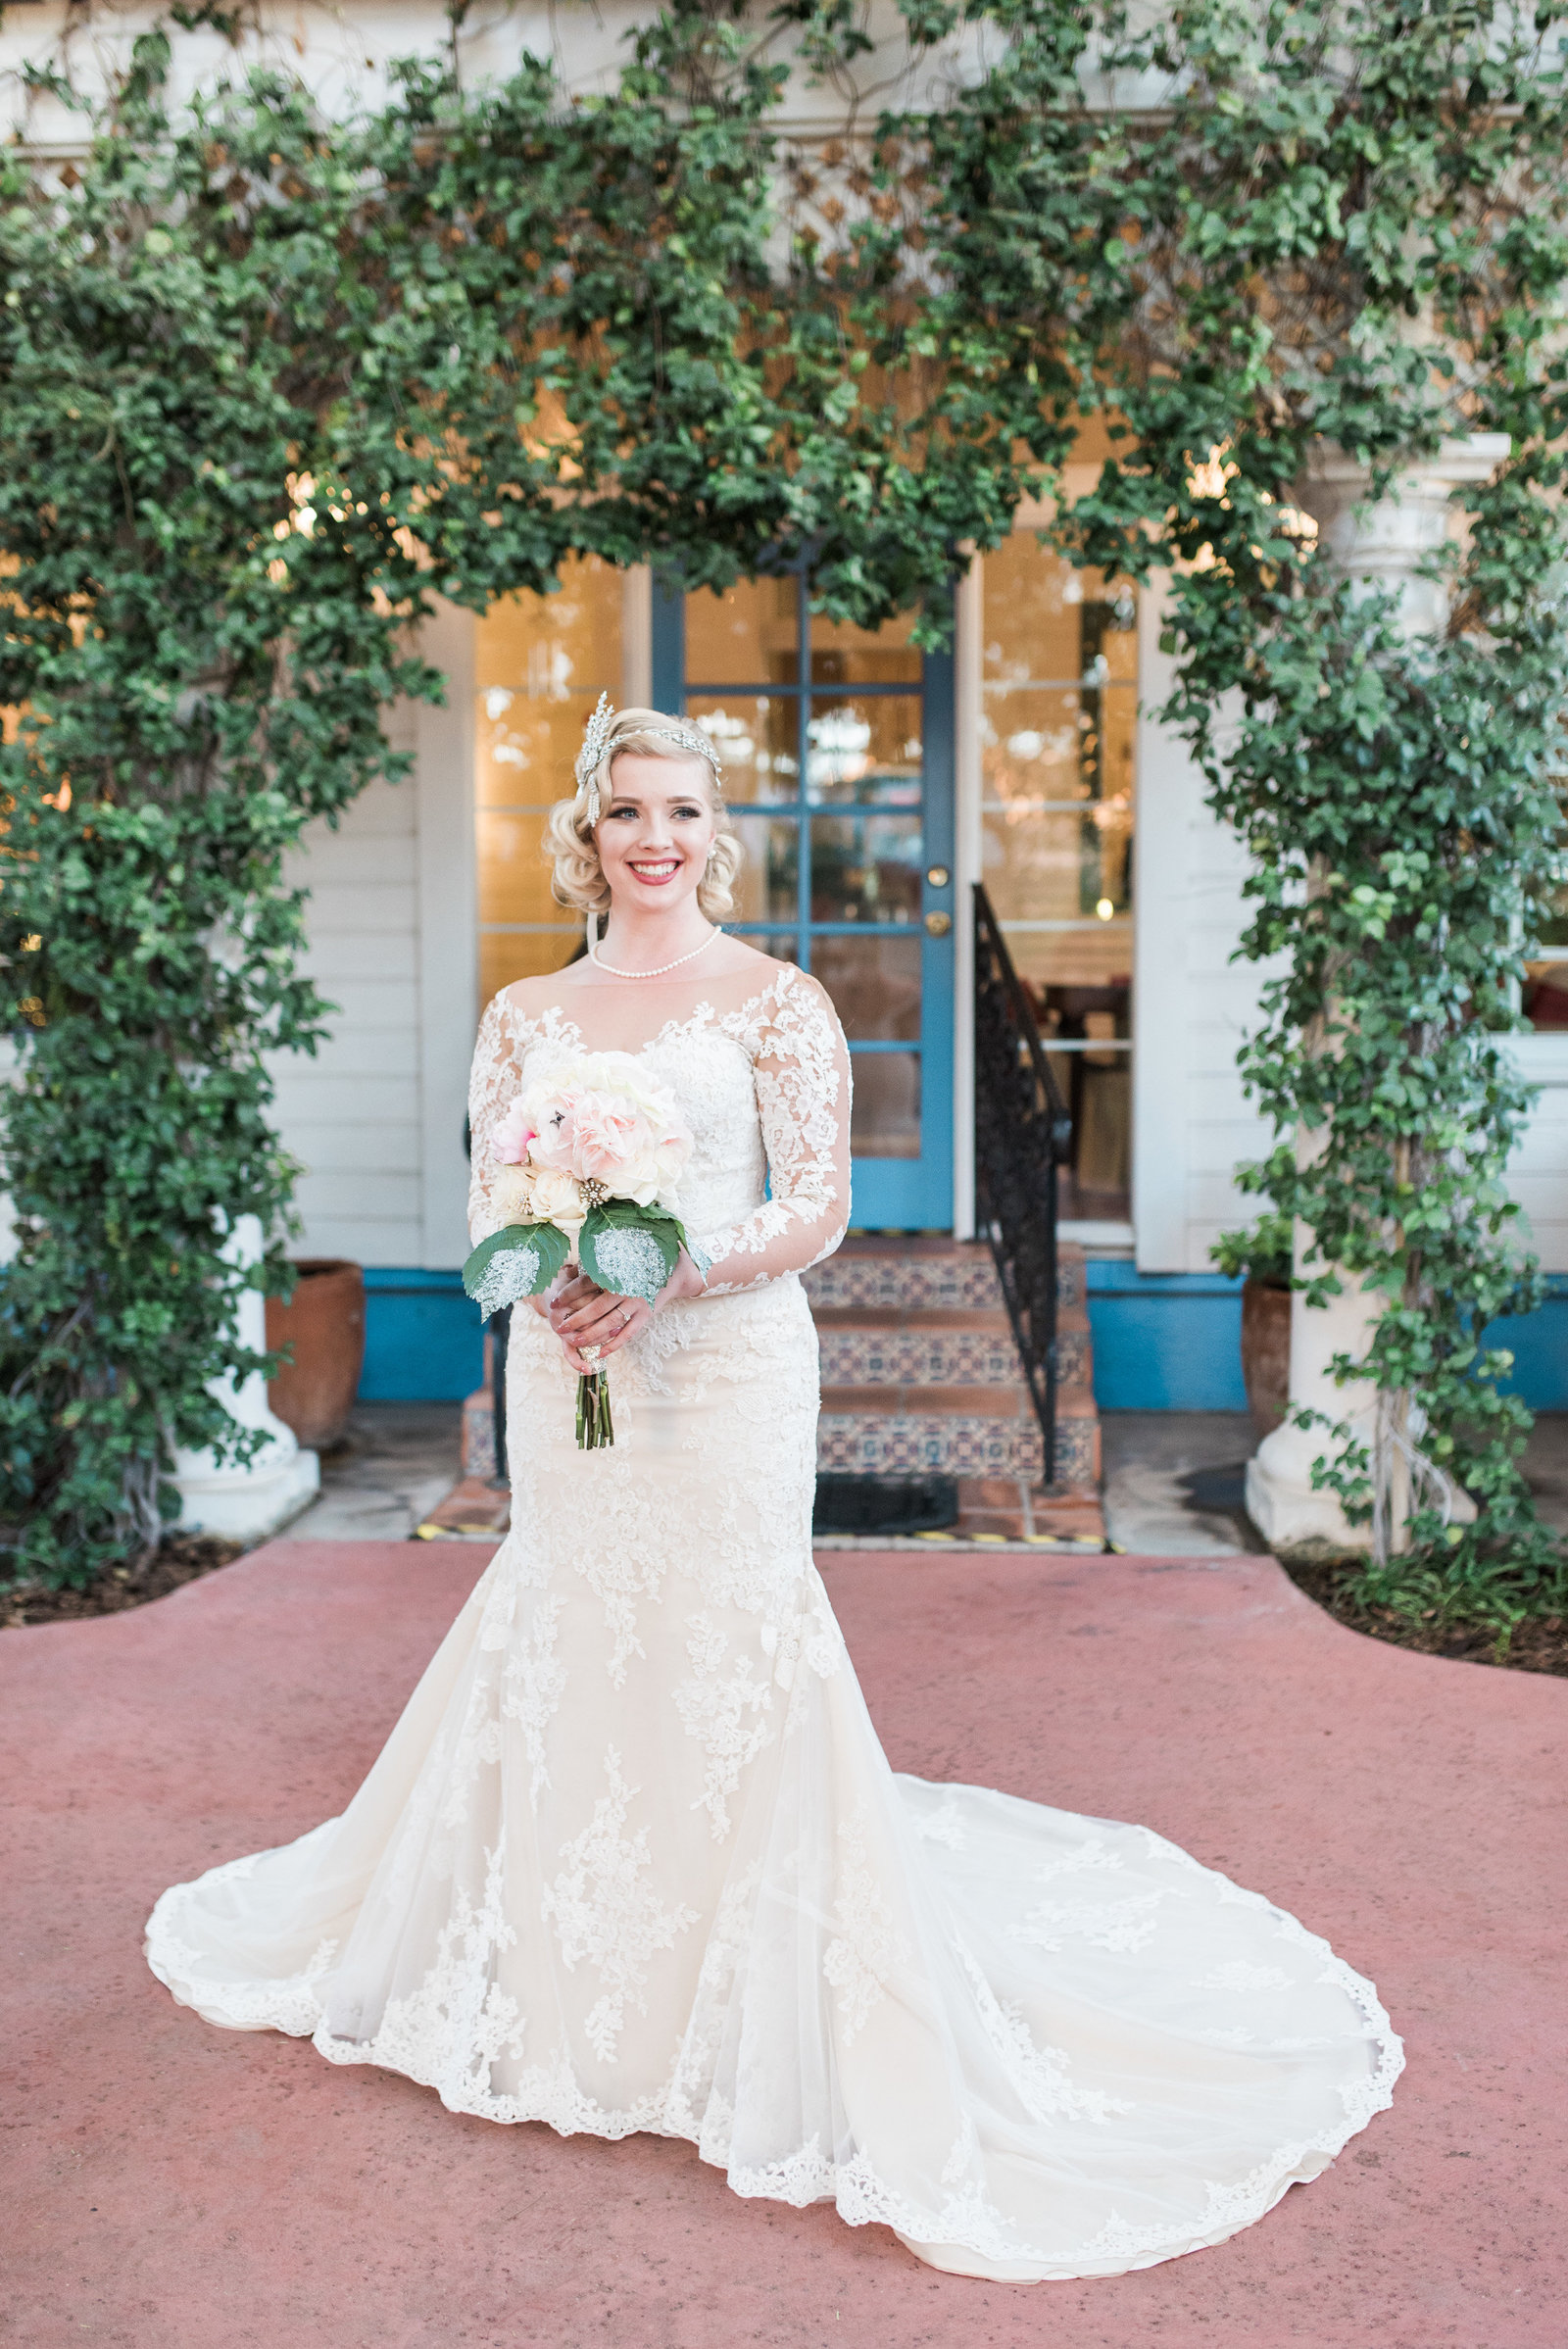 Z Mansion classic bride in lace gown with bouquet photo